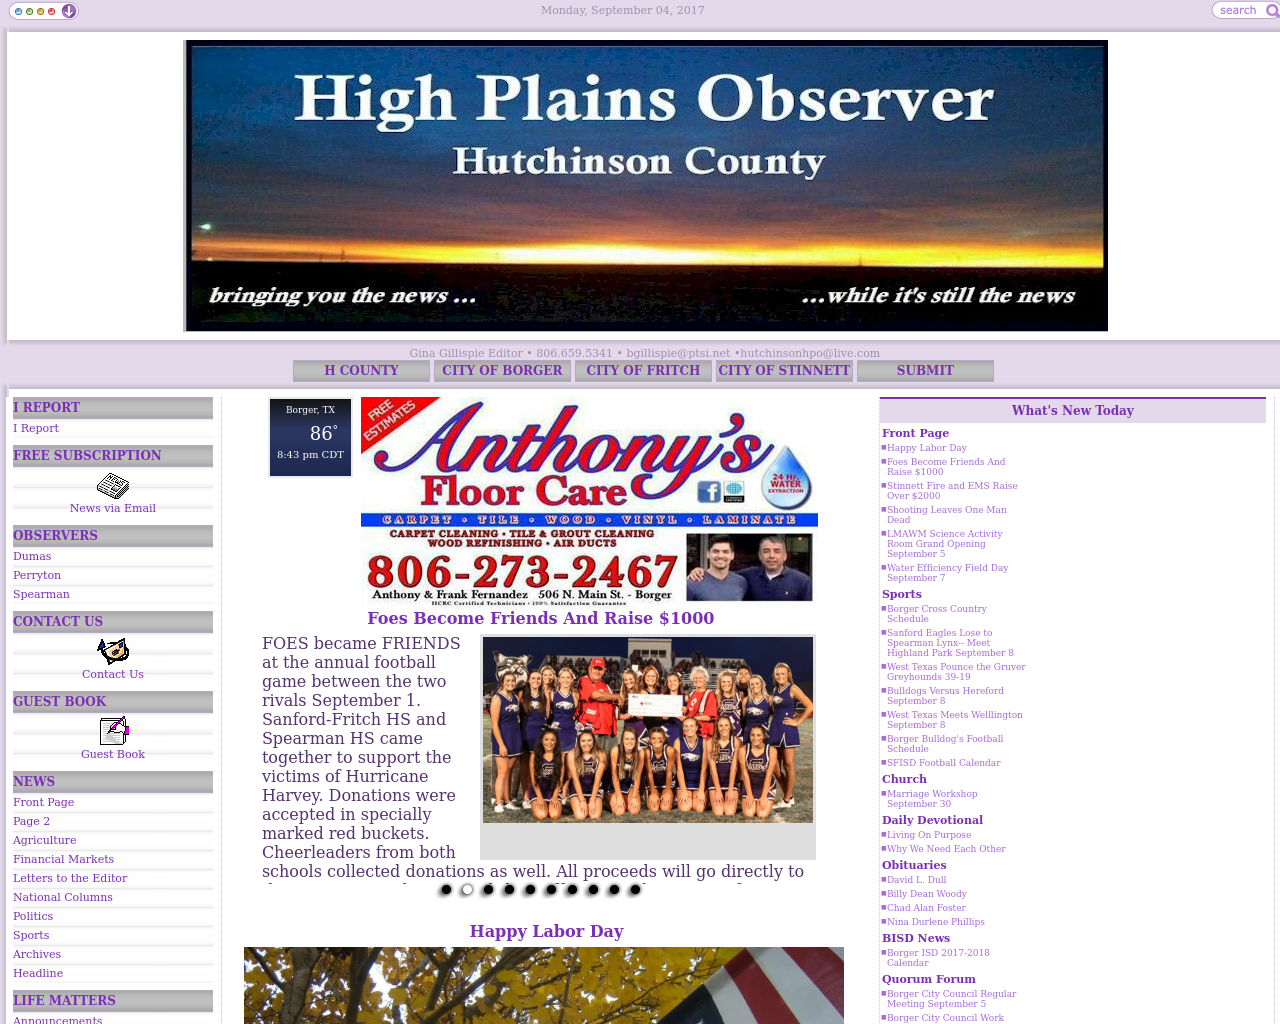 High-Plains-Observer-Hutchinson-County-Advertising-Reviews-Pricing